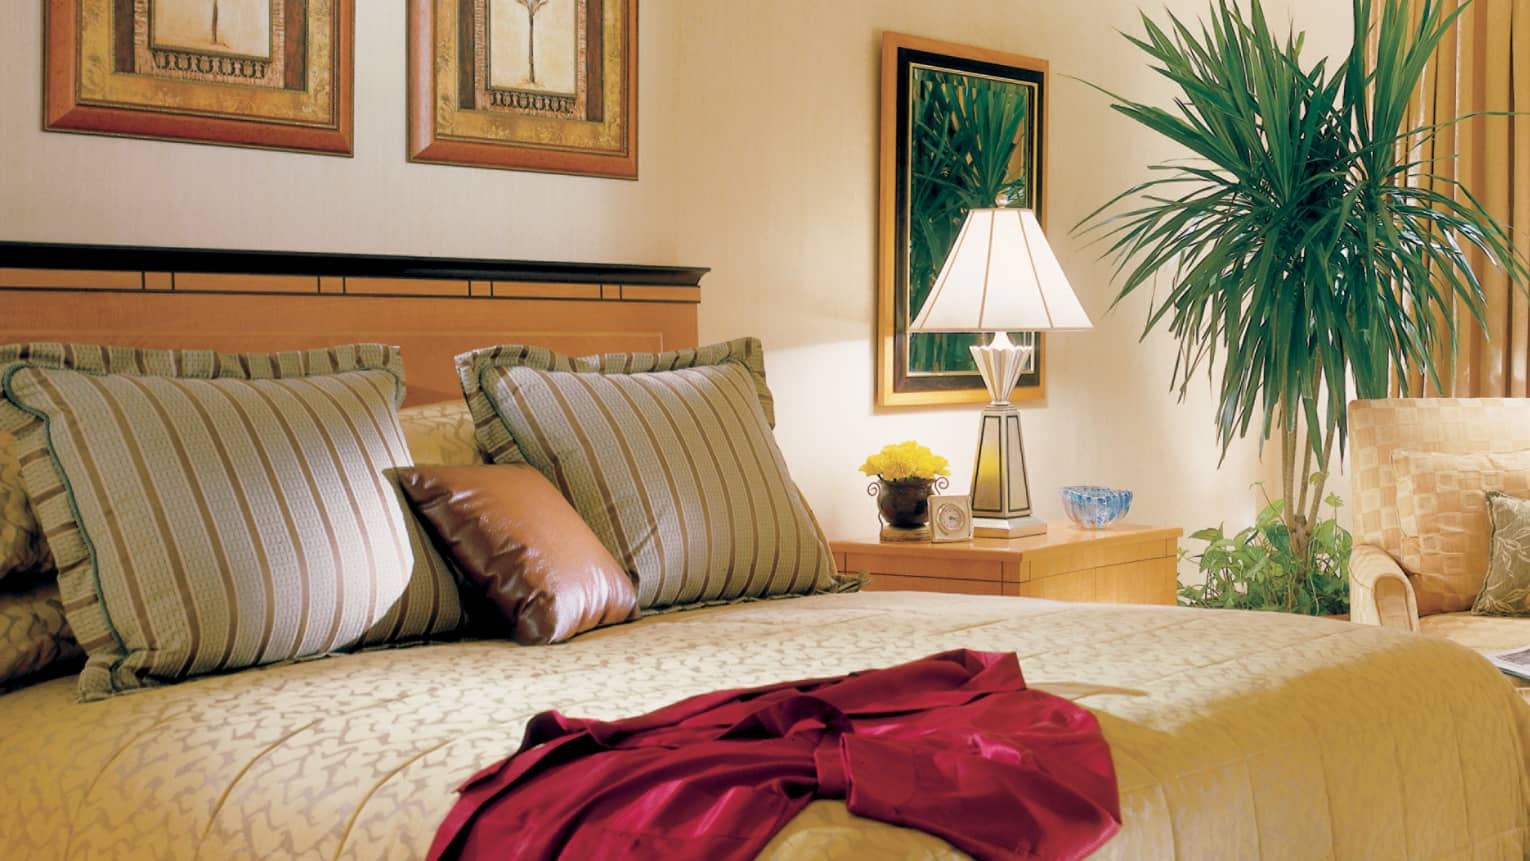 Nile Suite close-up of bed with colourful striped pillows, red silk robe draped on side, tropical indoor plants nearby